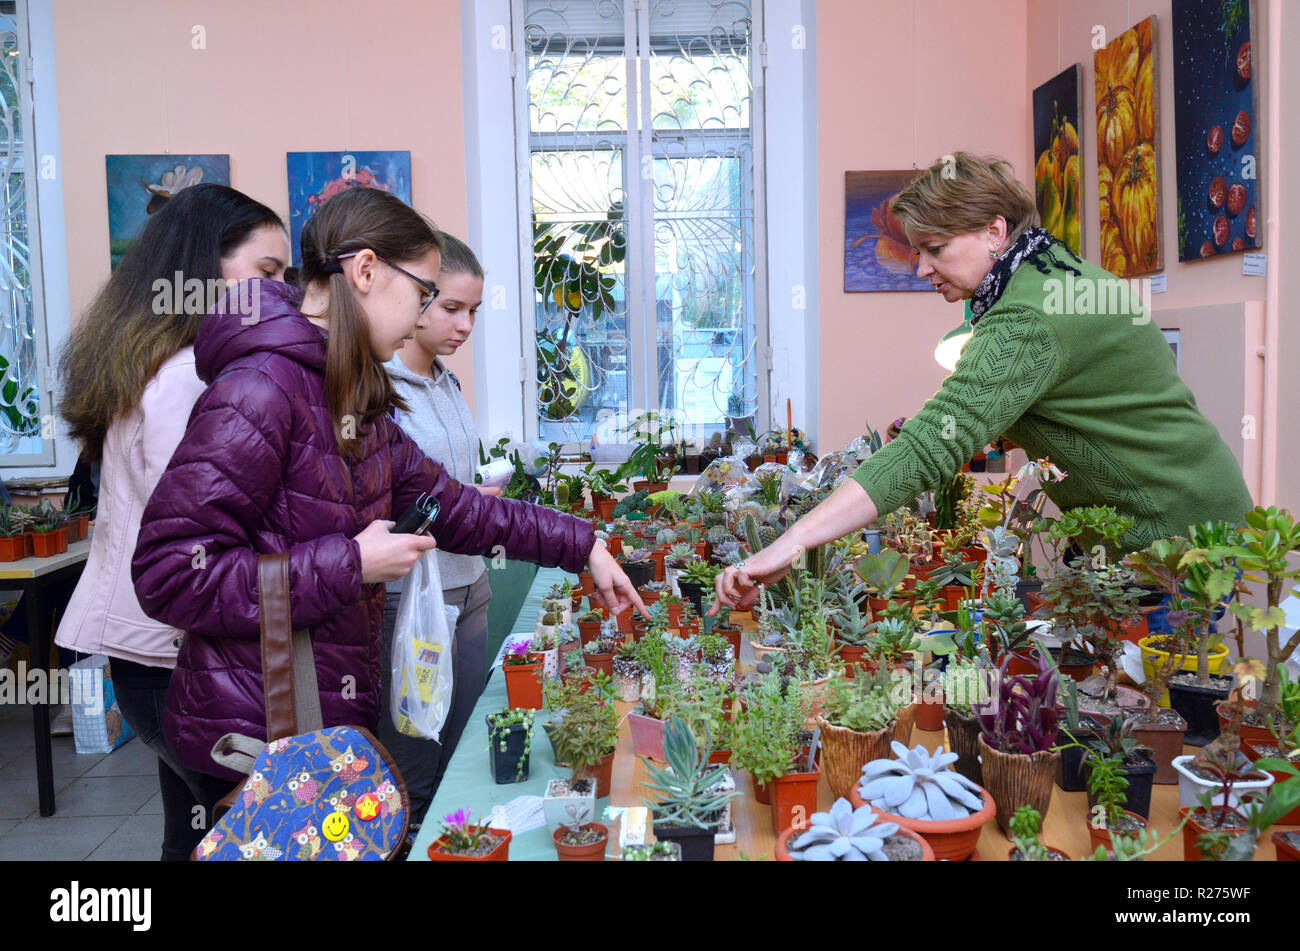 At the flower shop. Seller keeping a pot with cactus and talking to a  customer. Kiev, Ukraine. October 12, 2018 Stock Photo